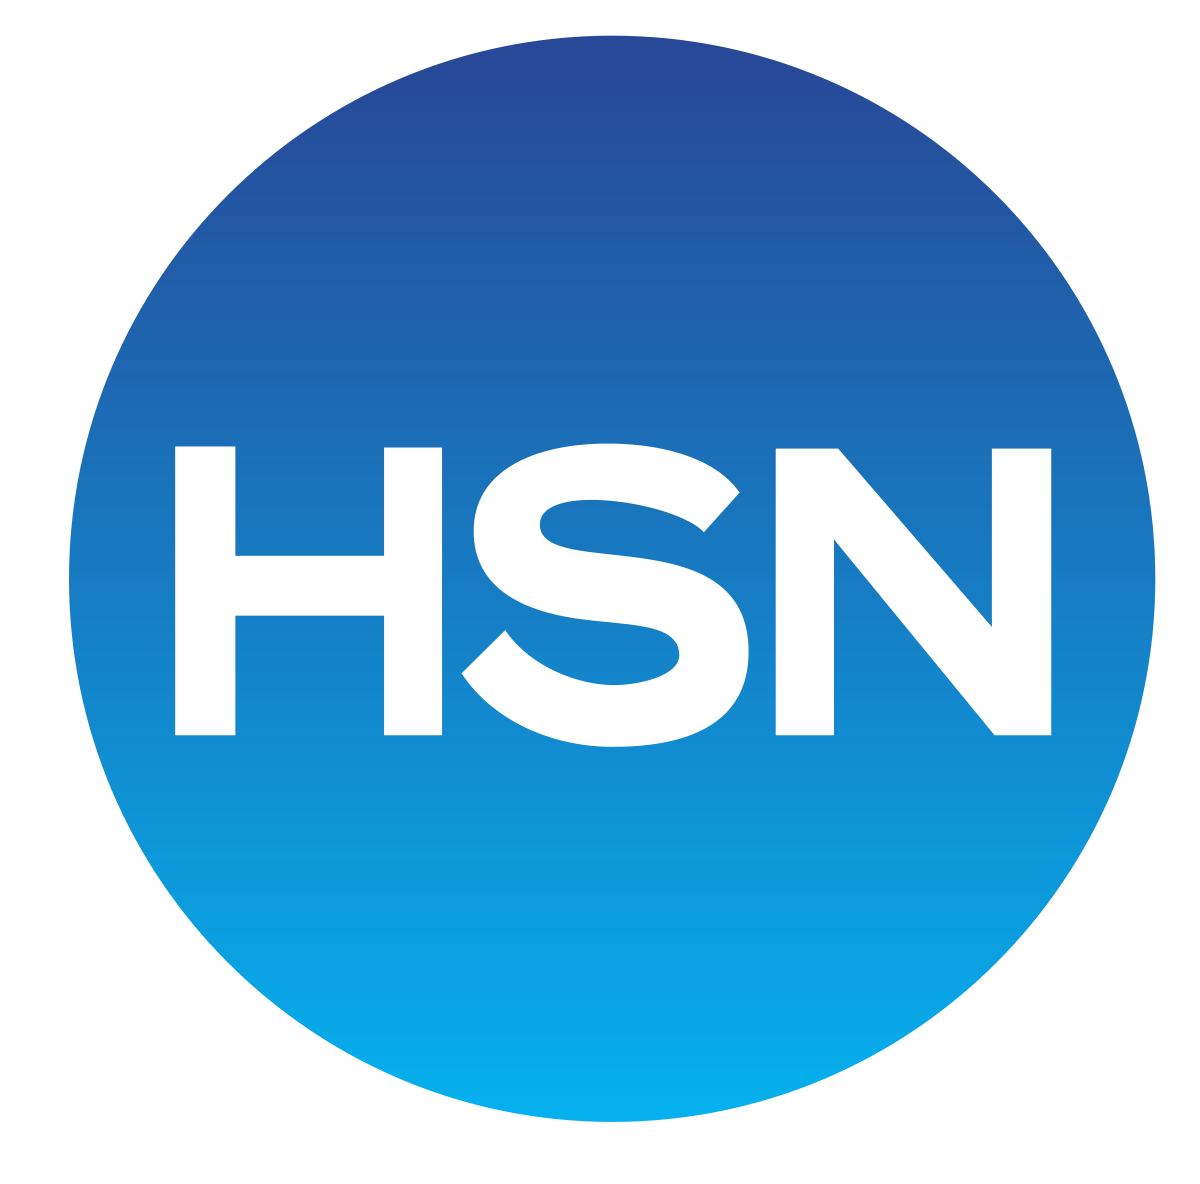 The Home Shopping Network logo